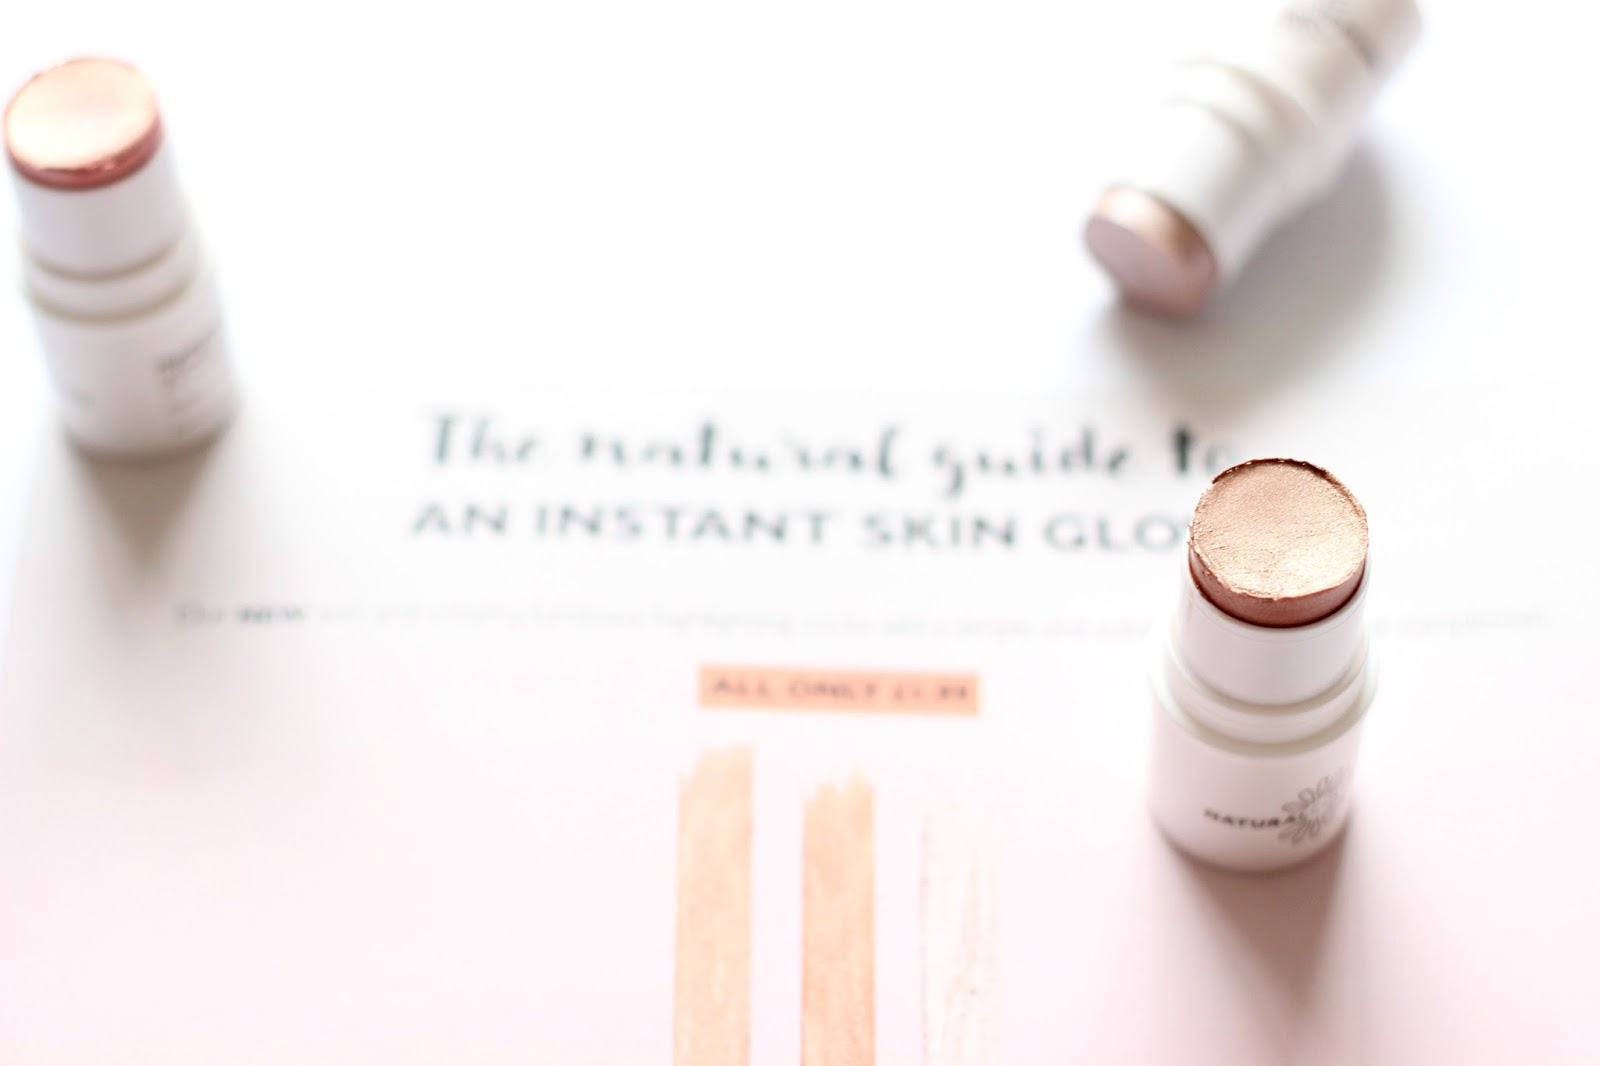 A Review of the Natural Collection Highlighting Sticks